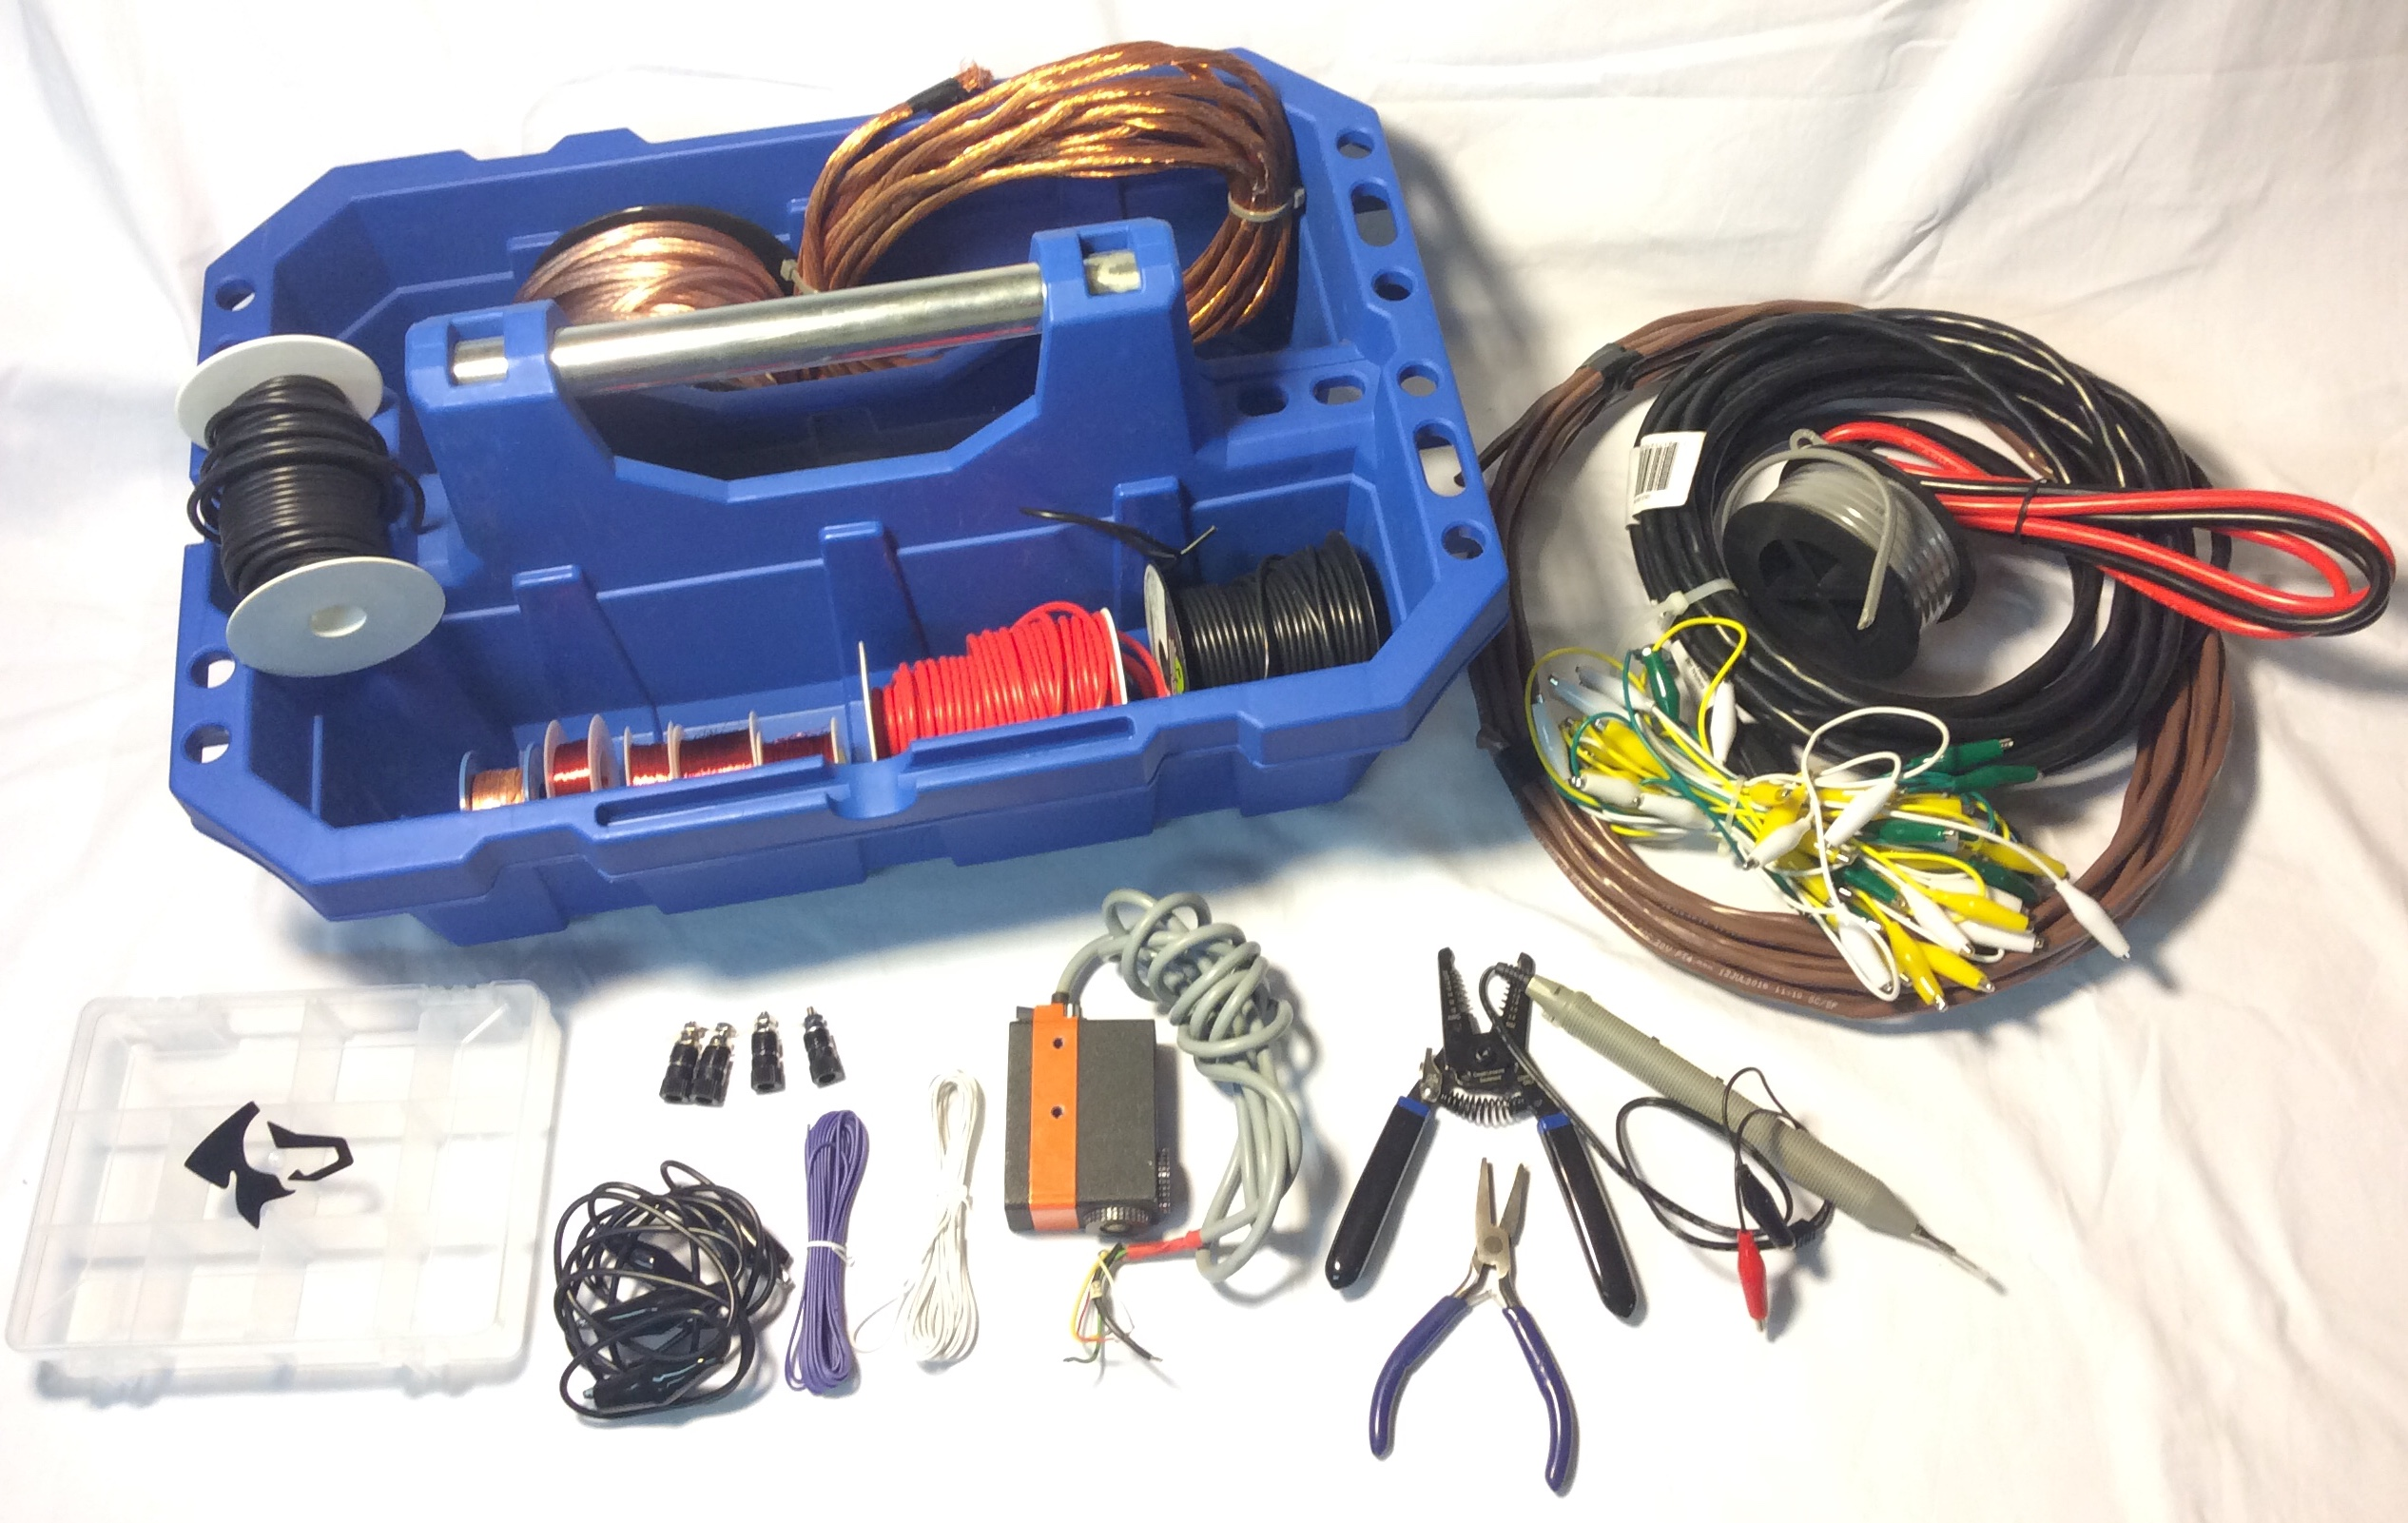 Electrician's Toolkit